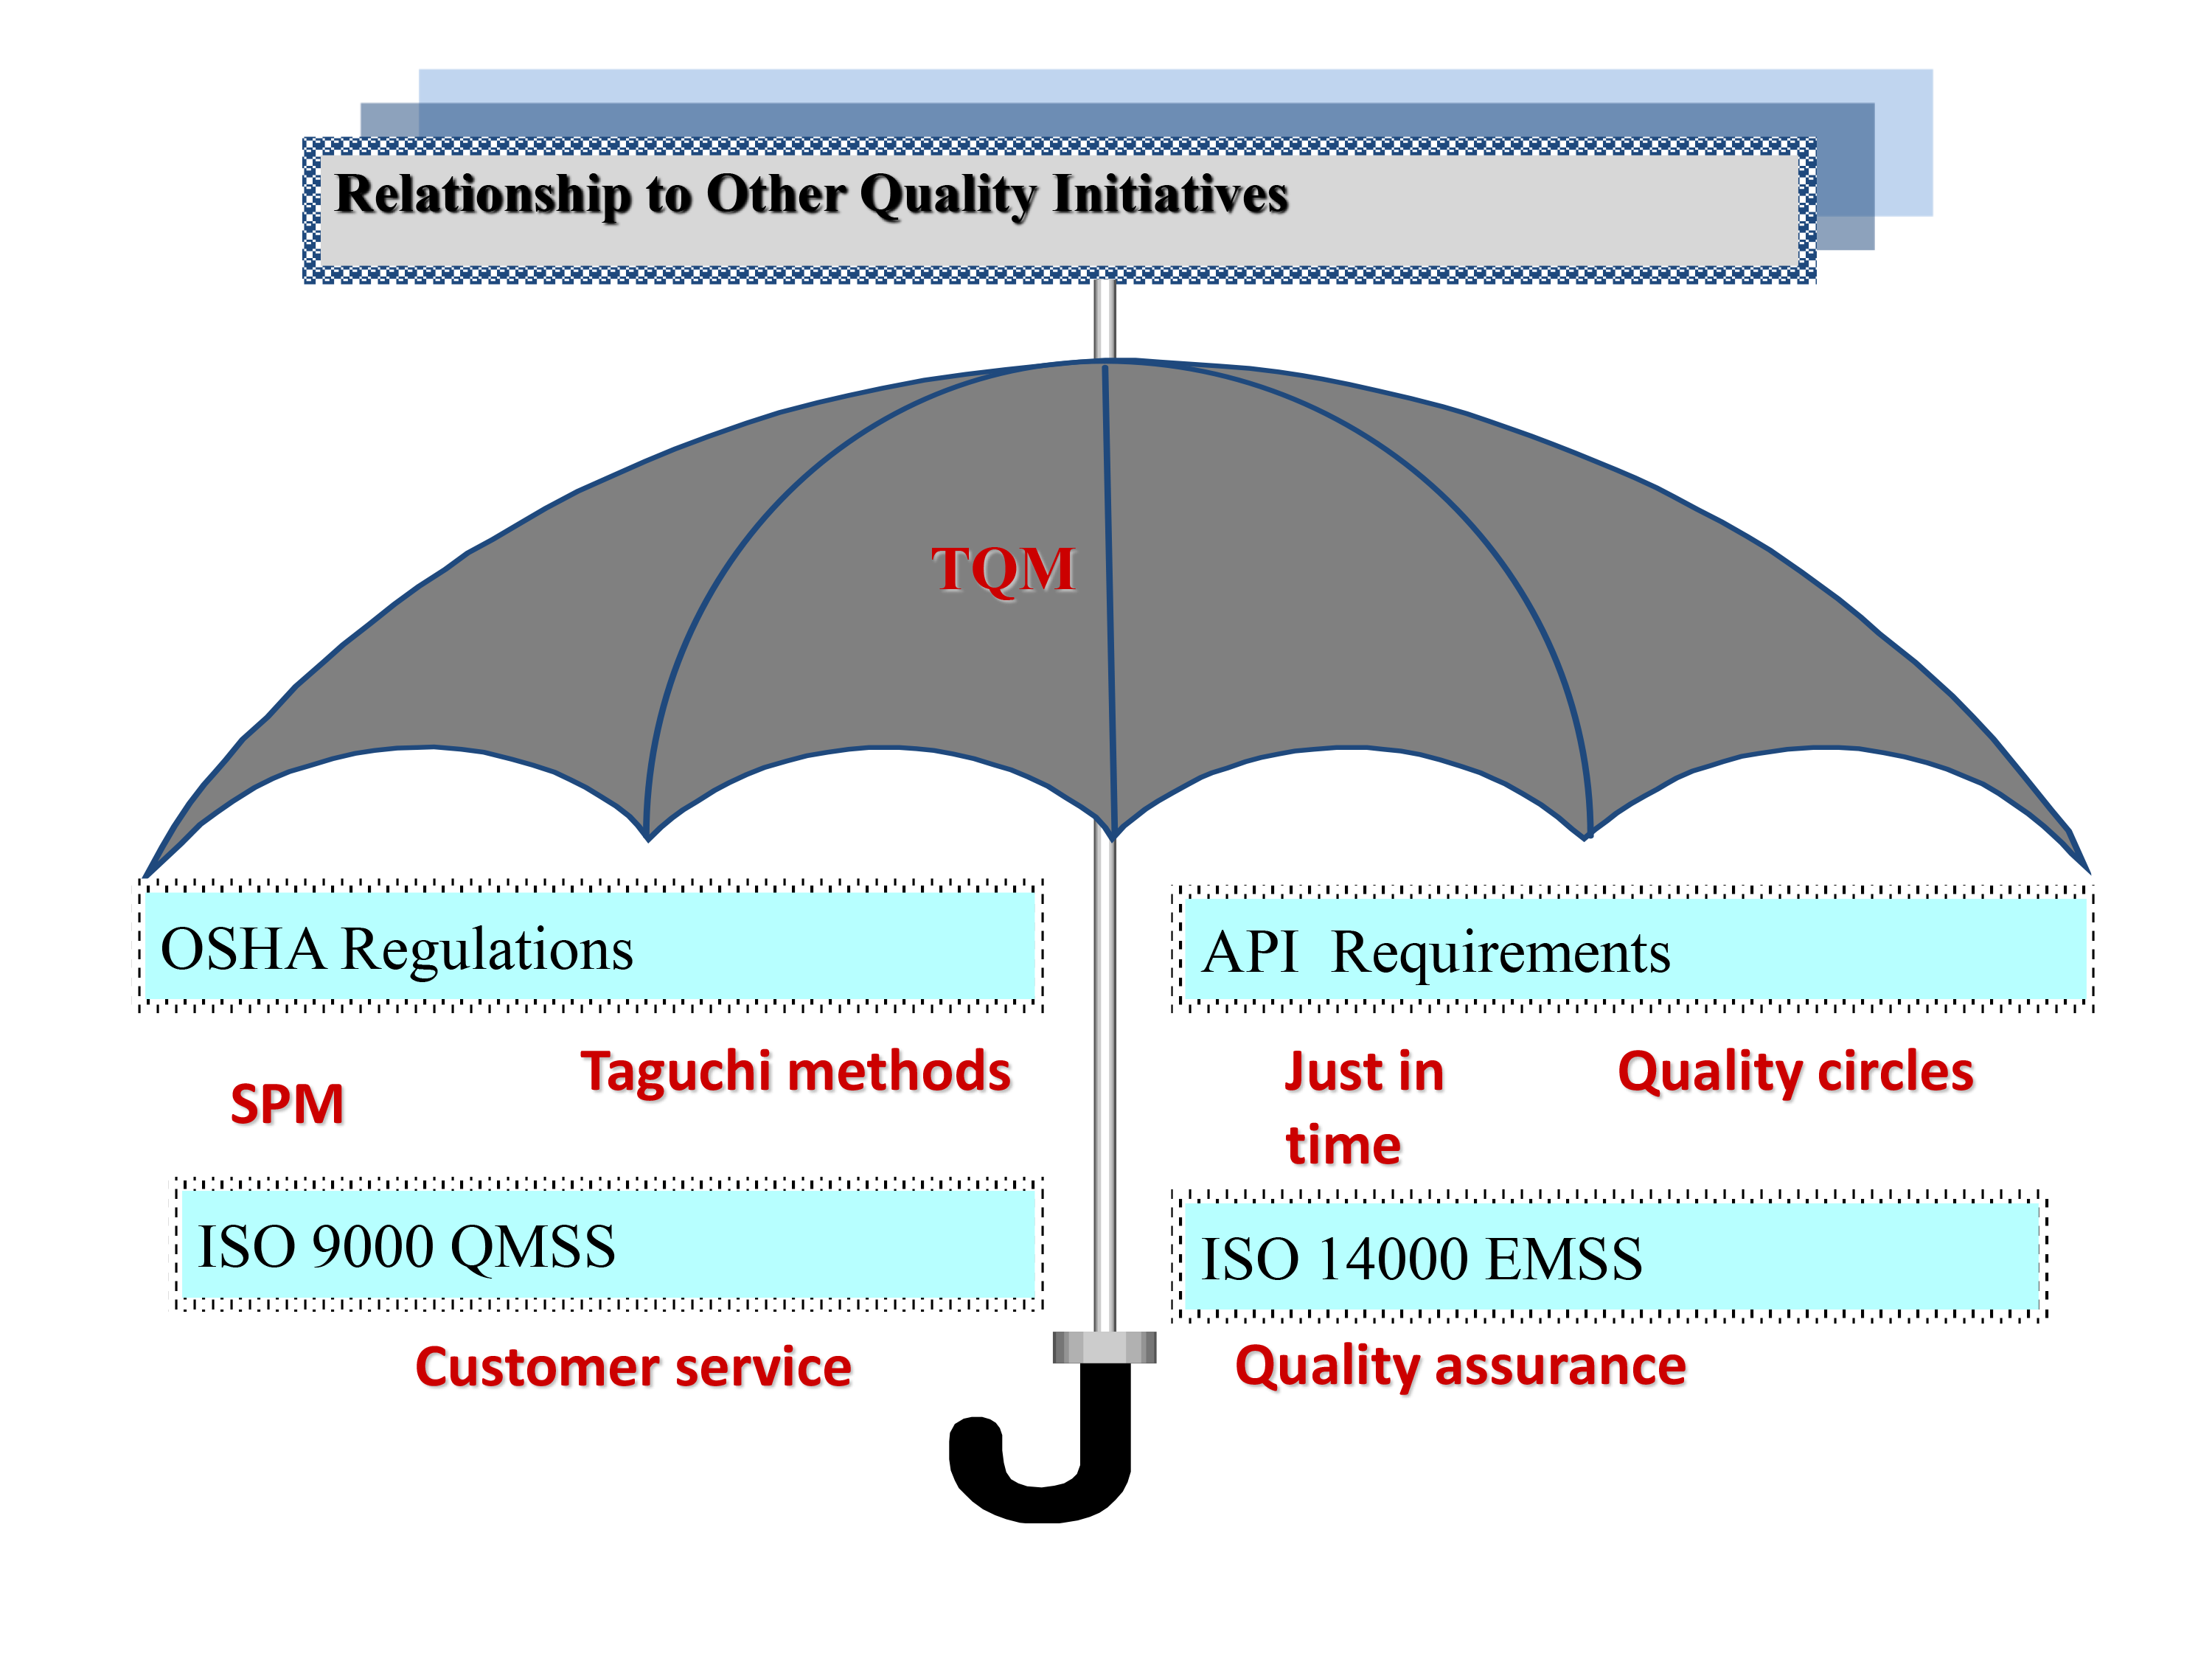 Relationship to Other Quality Initiatives